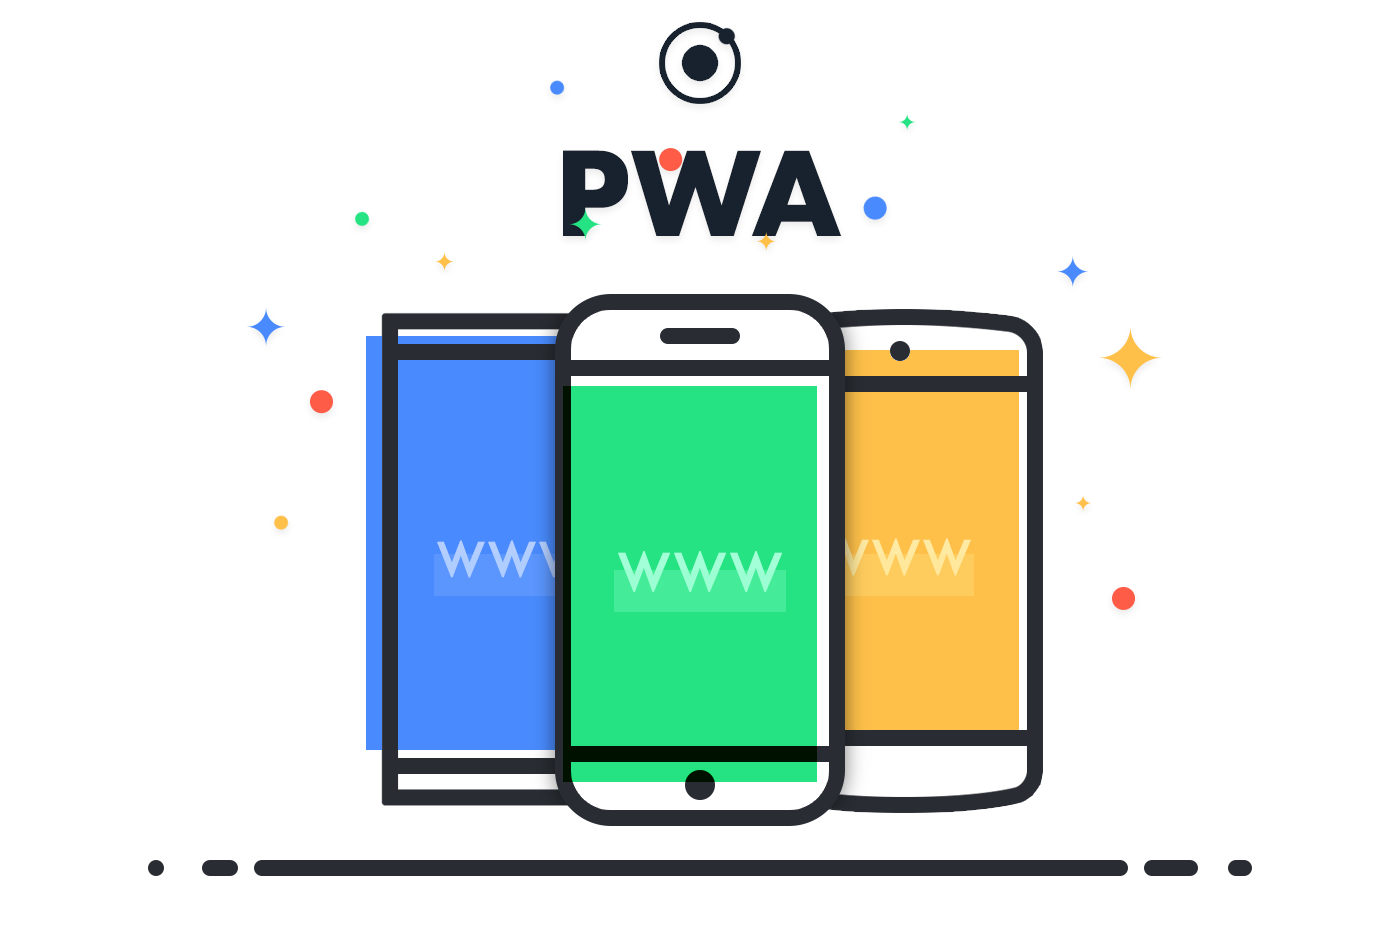 How to create a progressive web app (PWA) in laravel 5.* and above